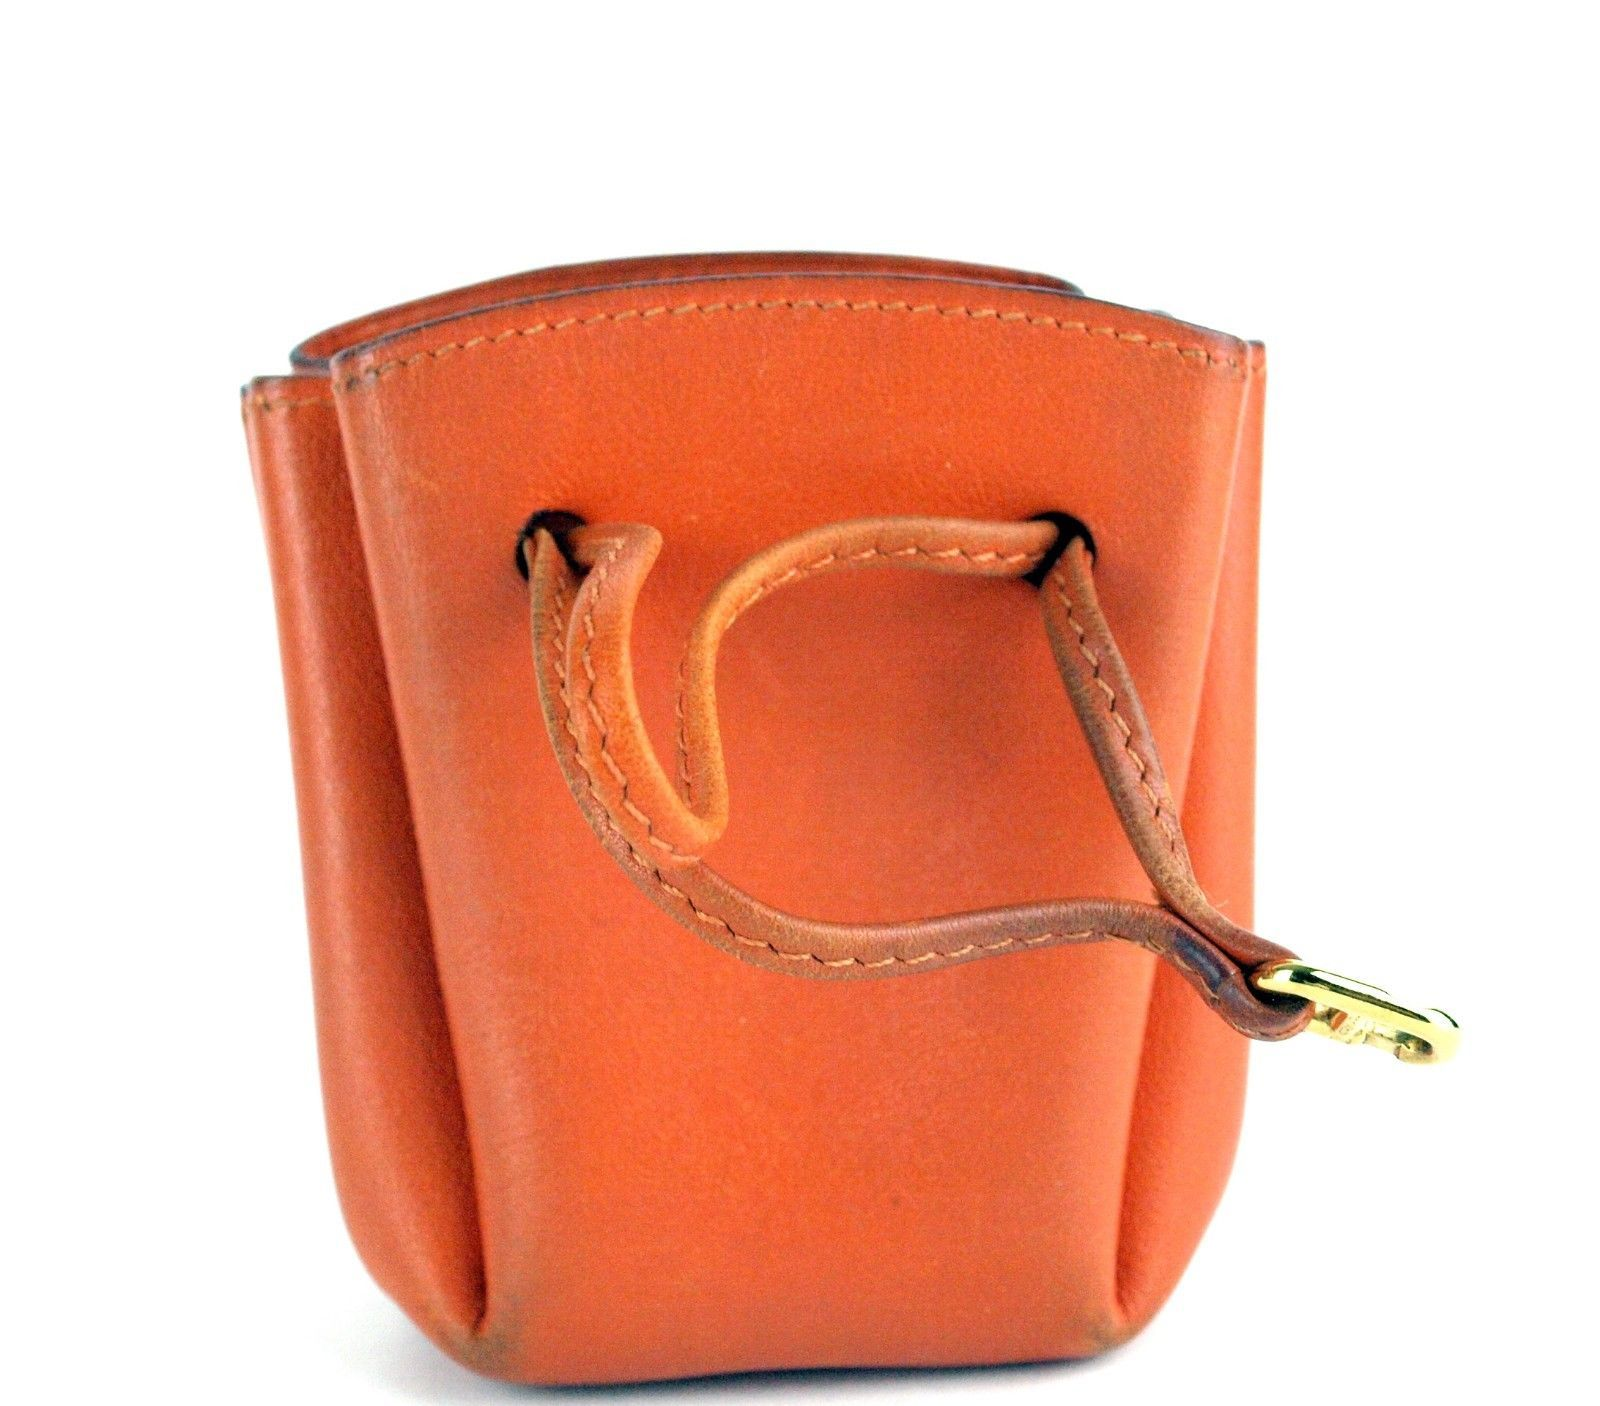 Authentic HERMES Paris Orange Leather Tiny Cosmetic Pouch Wristlet Purse France